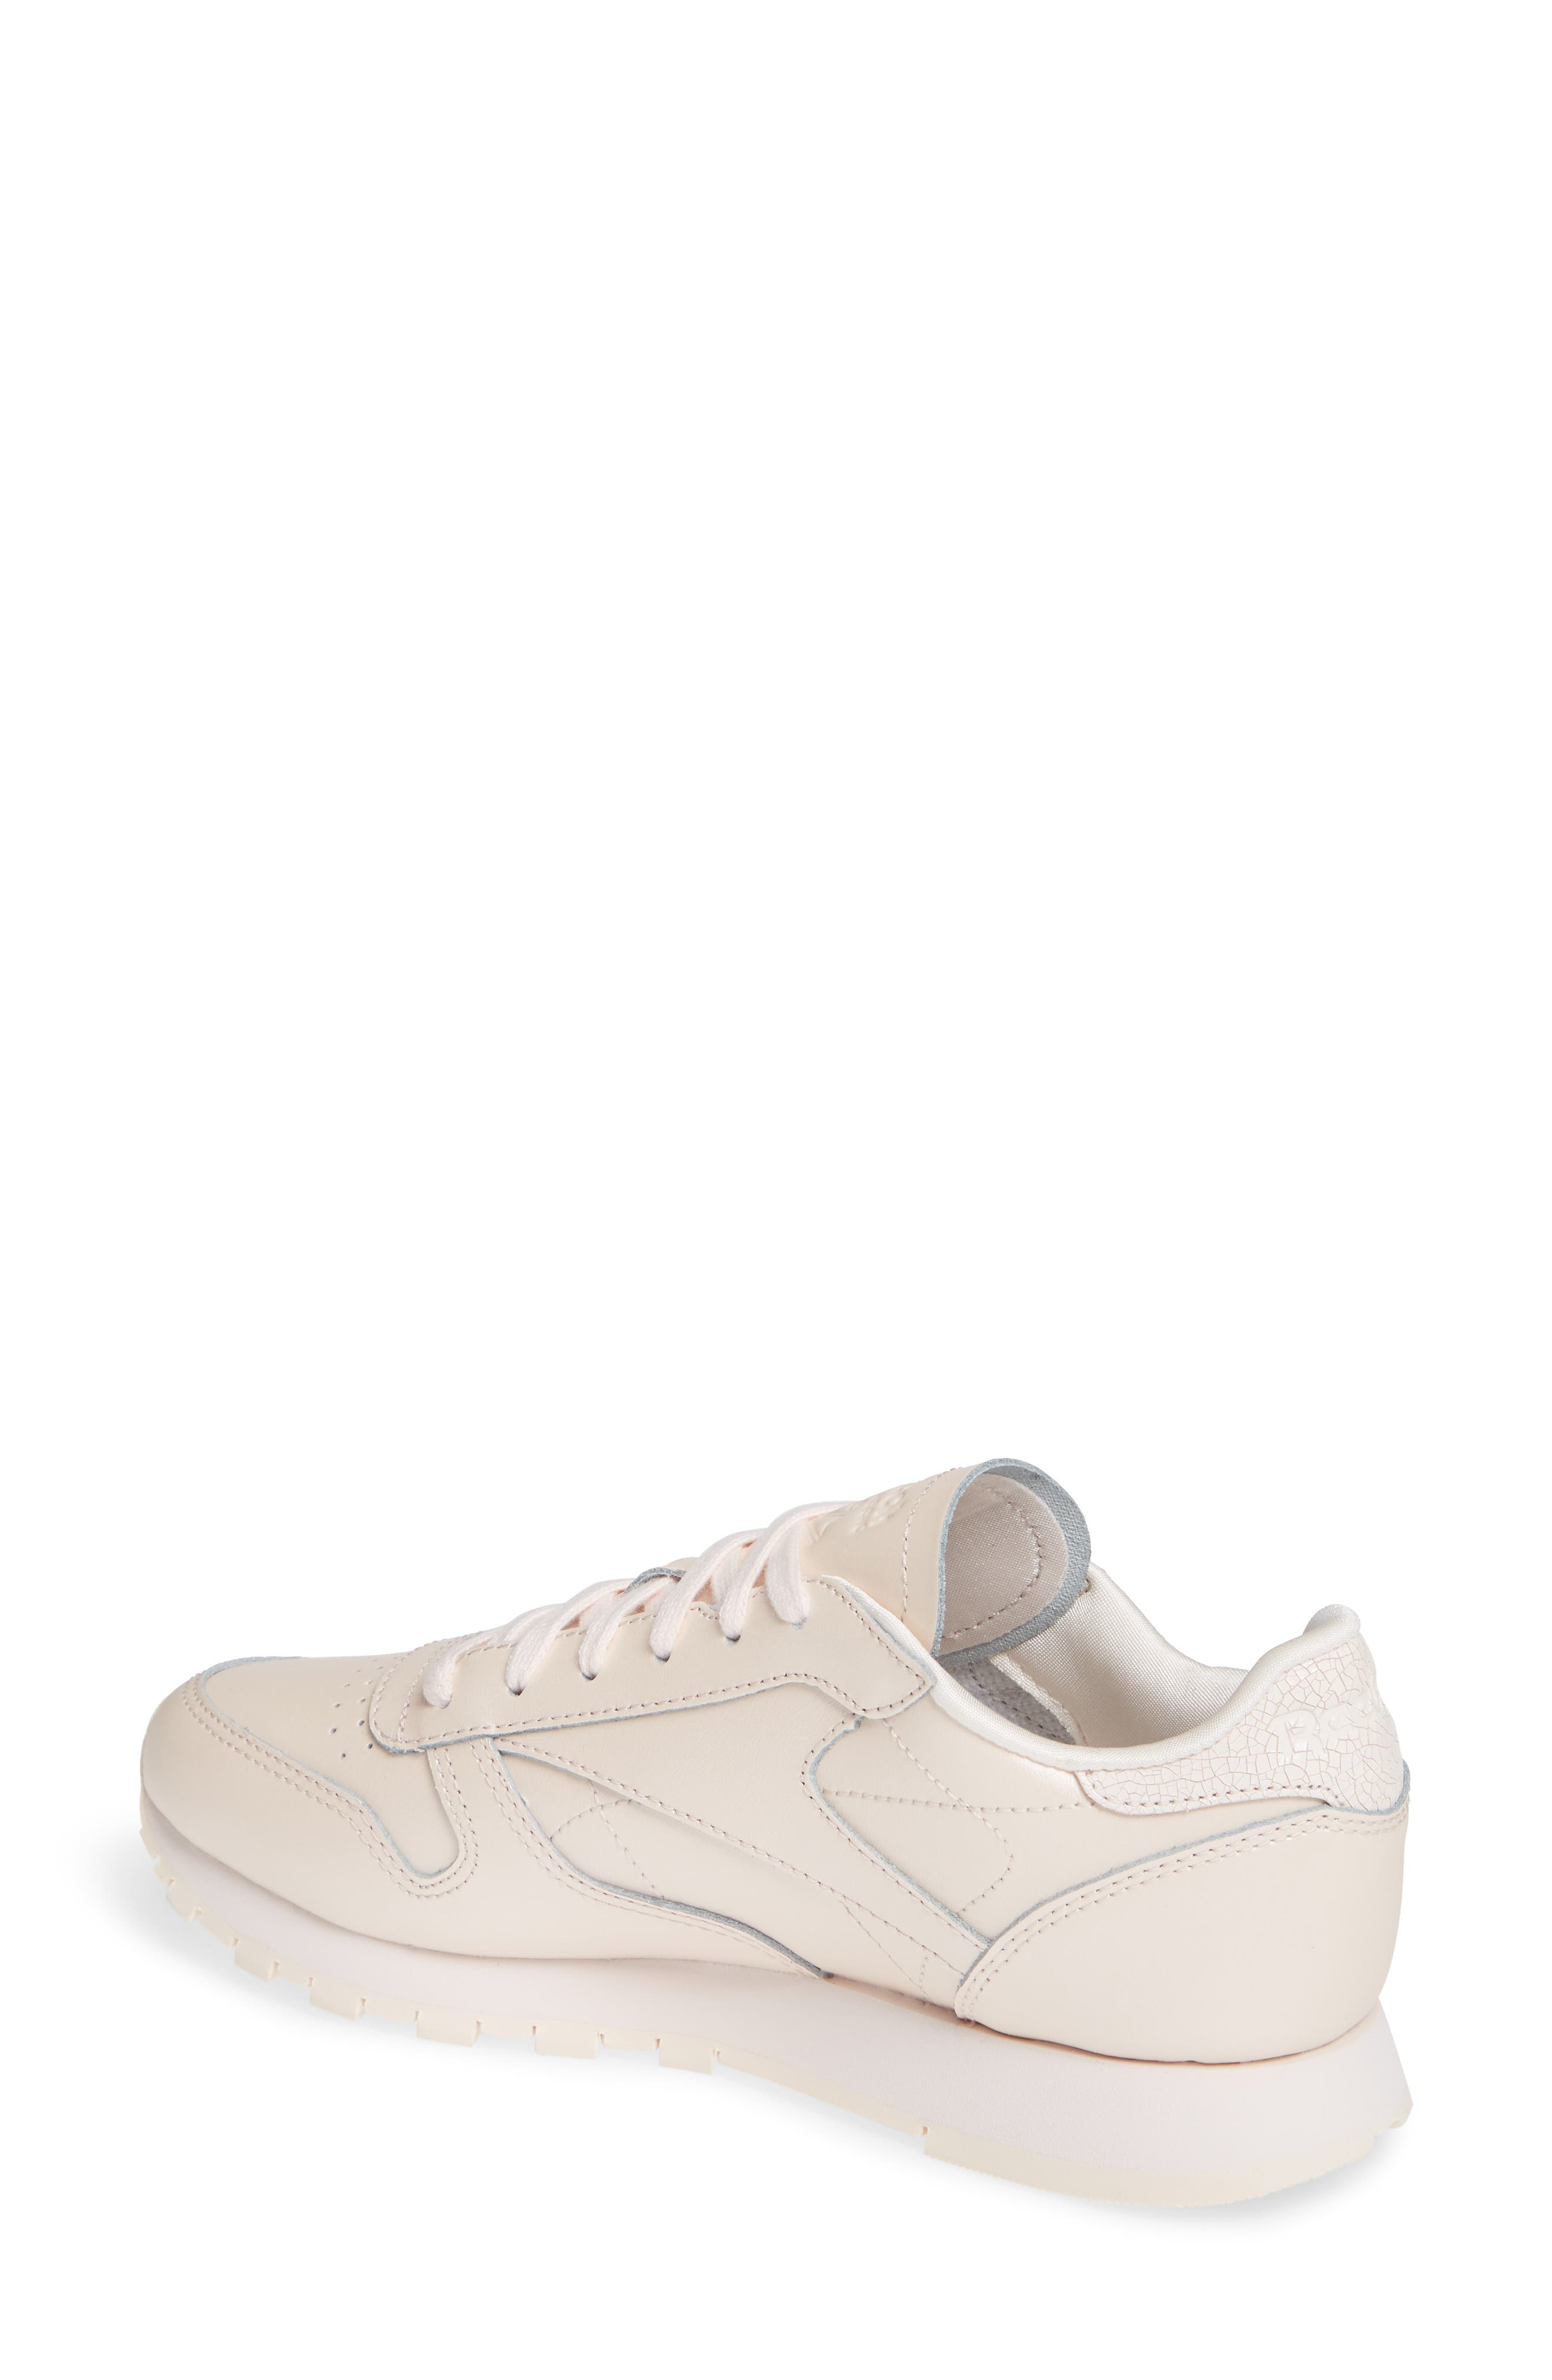 Classic Leather Sneaker,                             Alternate thumbnail 2, color,                             PALE PINK